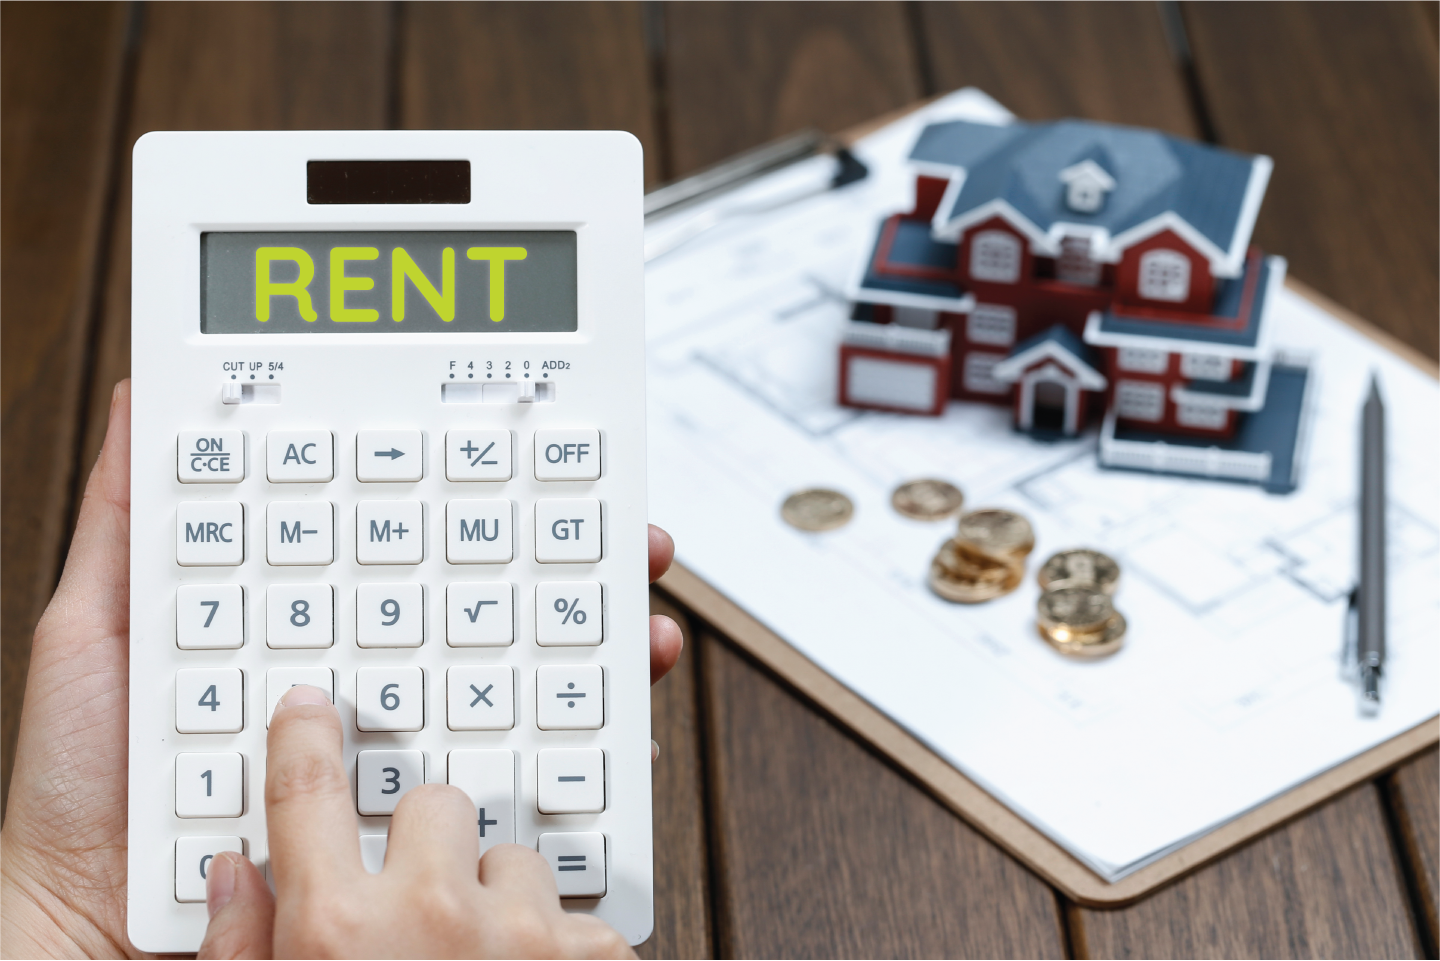 Monthly Rent Calculator: How to calculate monthly rent!